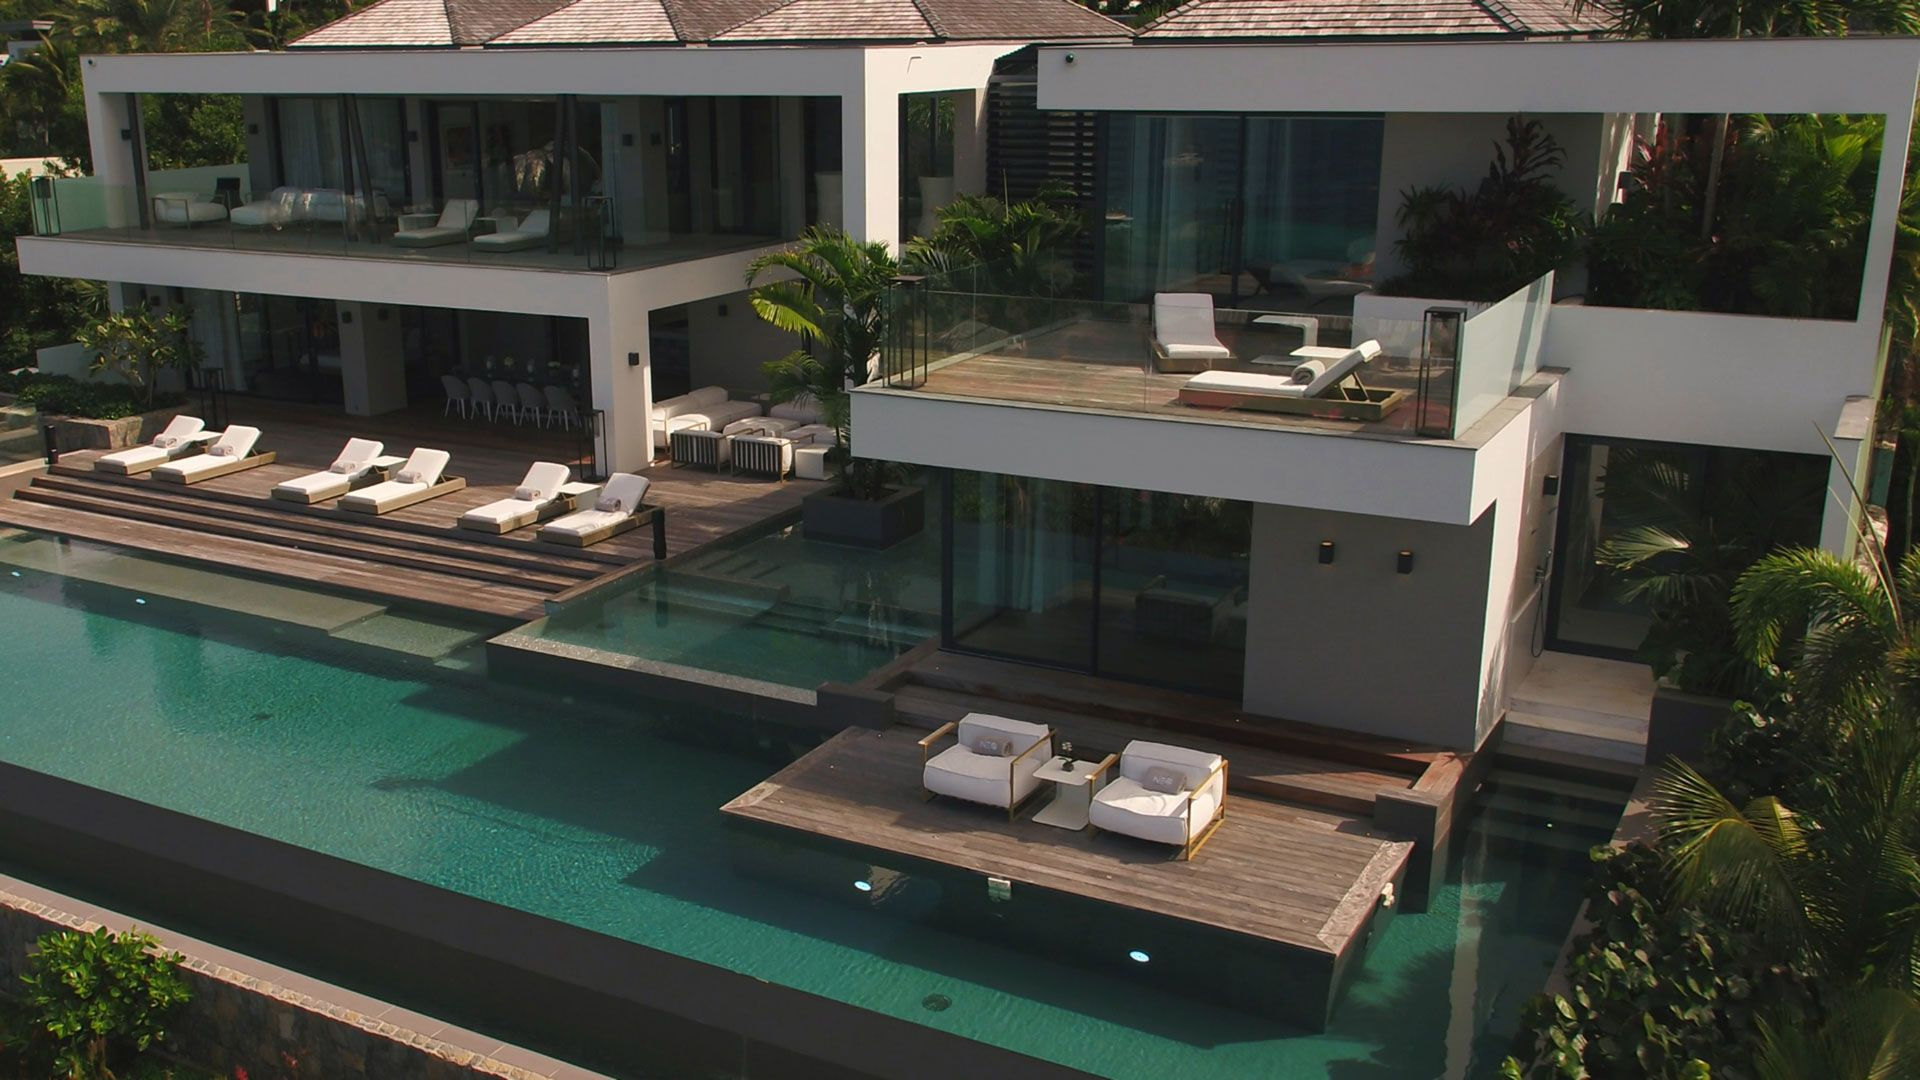 Villa Neo infinity pool and private decks